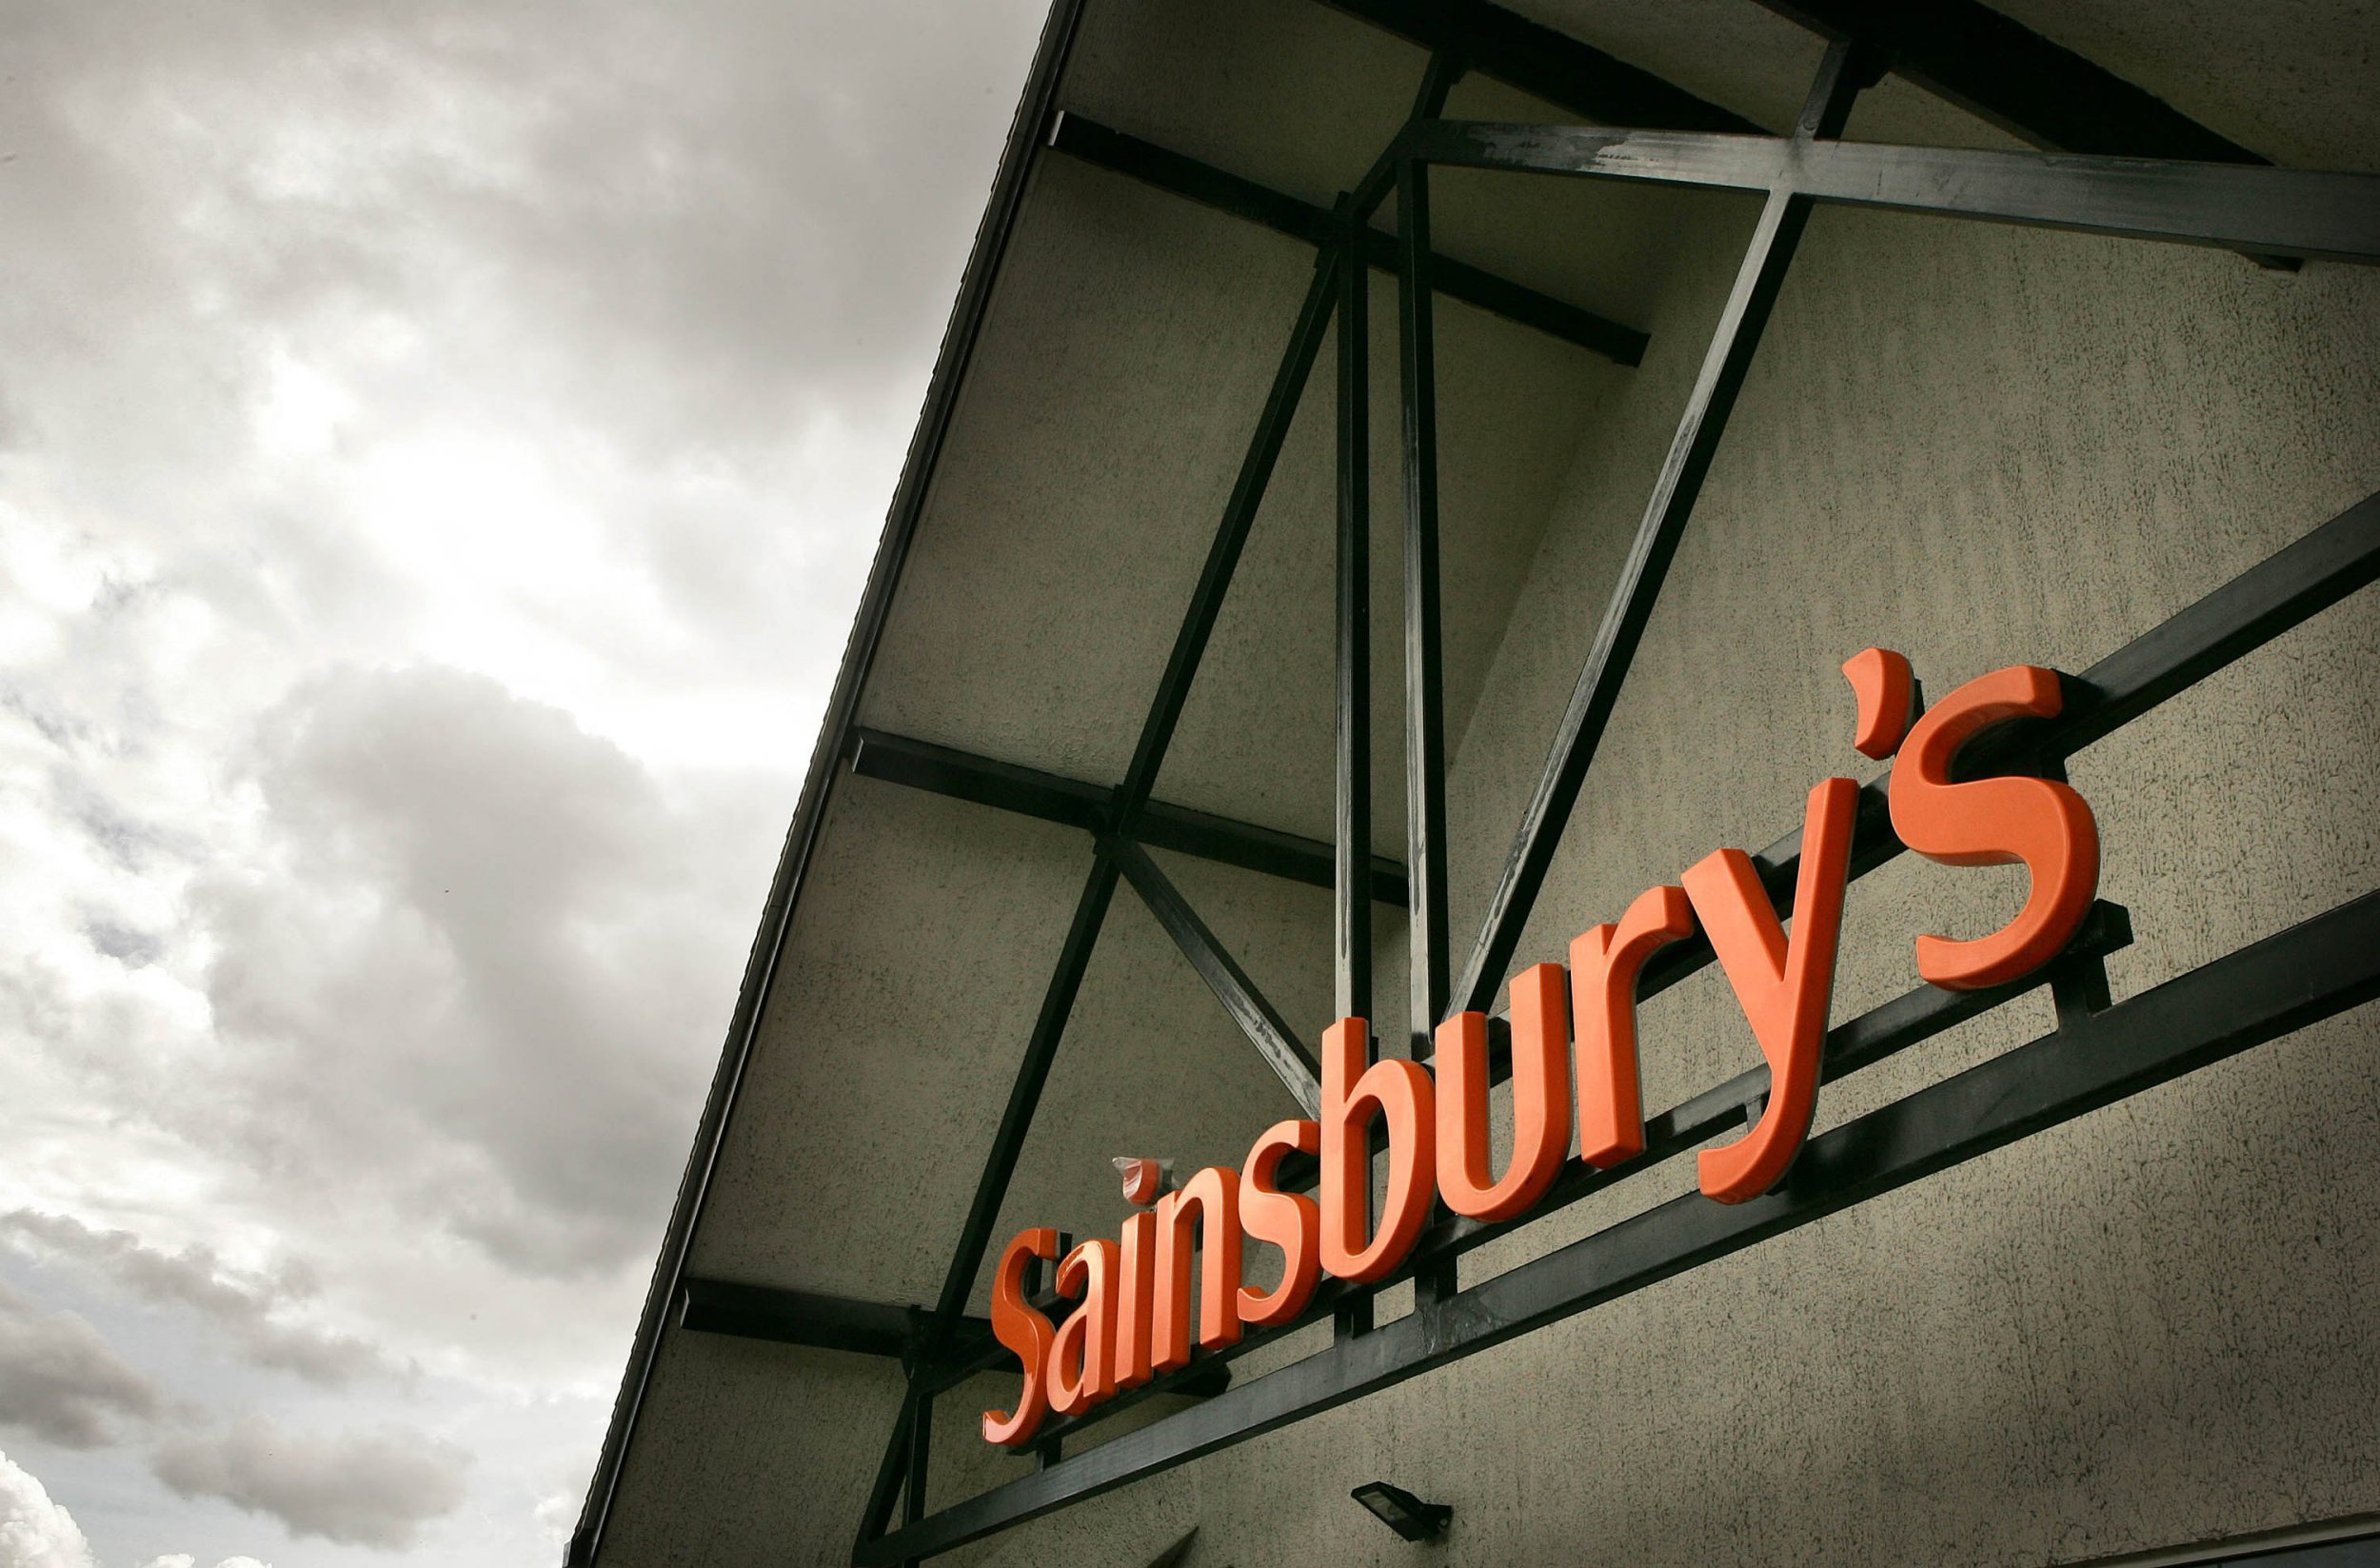 Sainsbury's store thinks mums would enjoy a 'Mother's Day Breakfast' of gin and Baileys